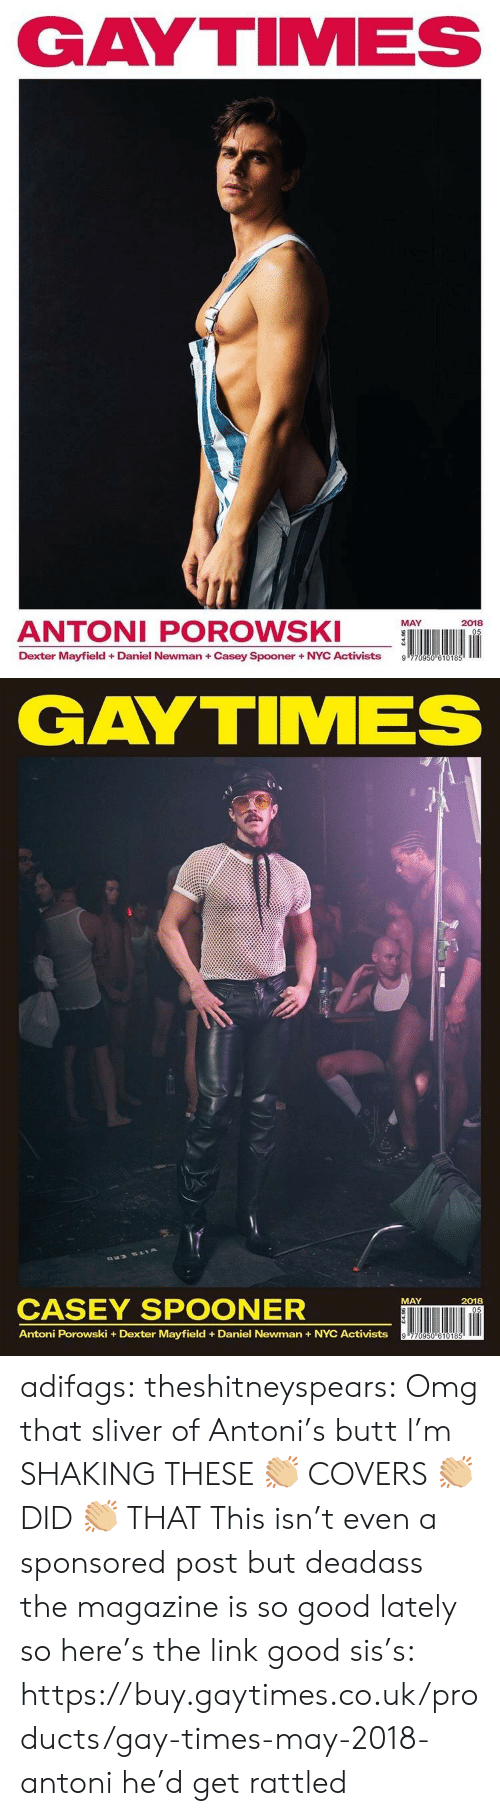 Newman: GAYTIMES  ANTONI POROWS  MAY  2018  Dexter Mayfield + Daniel Newman + Casey Spooner + NYC Activists  9   GAYTIMES  CASEY SPOONER  ÜNI lin  MAY  2018  Antoni Porowski +Dexter Mayfield Daniel Newman+NYC Activists adifags:  theshitneyspears:  Omg that sliver of Antoni's butt I'm SHAKING THESE 👏🏼 COVERS 👏🏼 DID 👏🏼 THAT  This isn't even a sponsored post but deadass the magazine is so good lately so here's the link good sis's: https://buy.gaytimes.co.uk/products/gay-times-may-2018-antoni  he'd get rattled